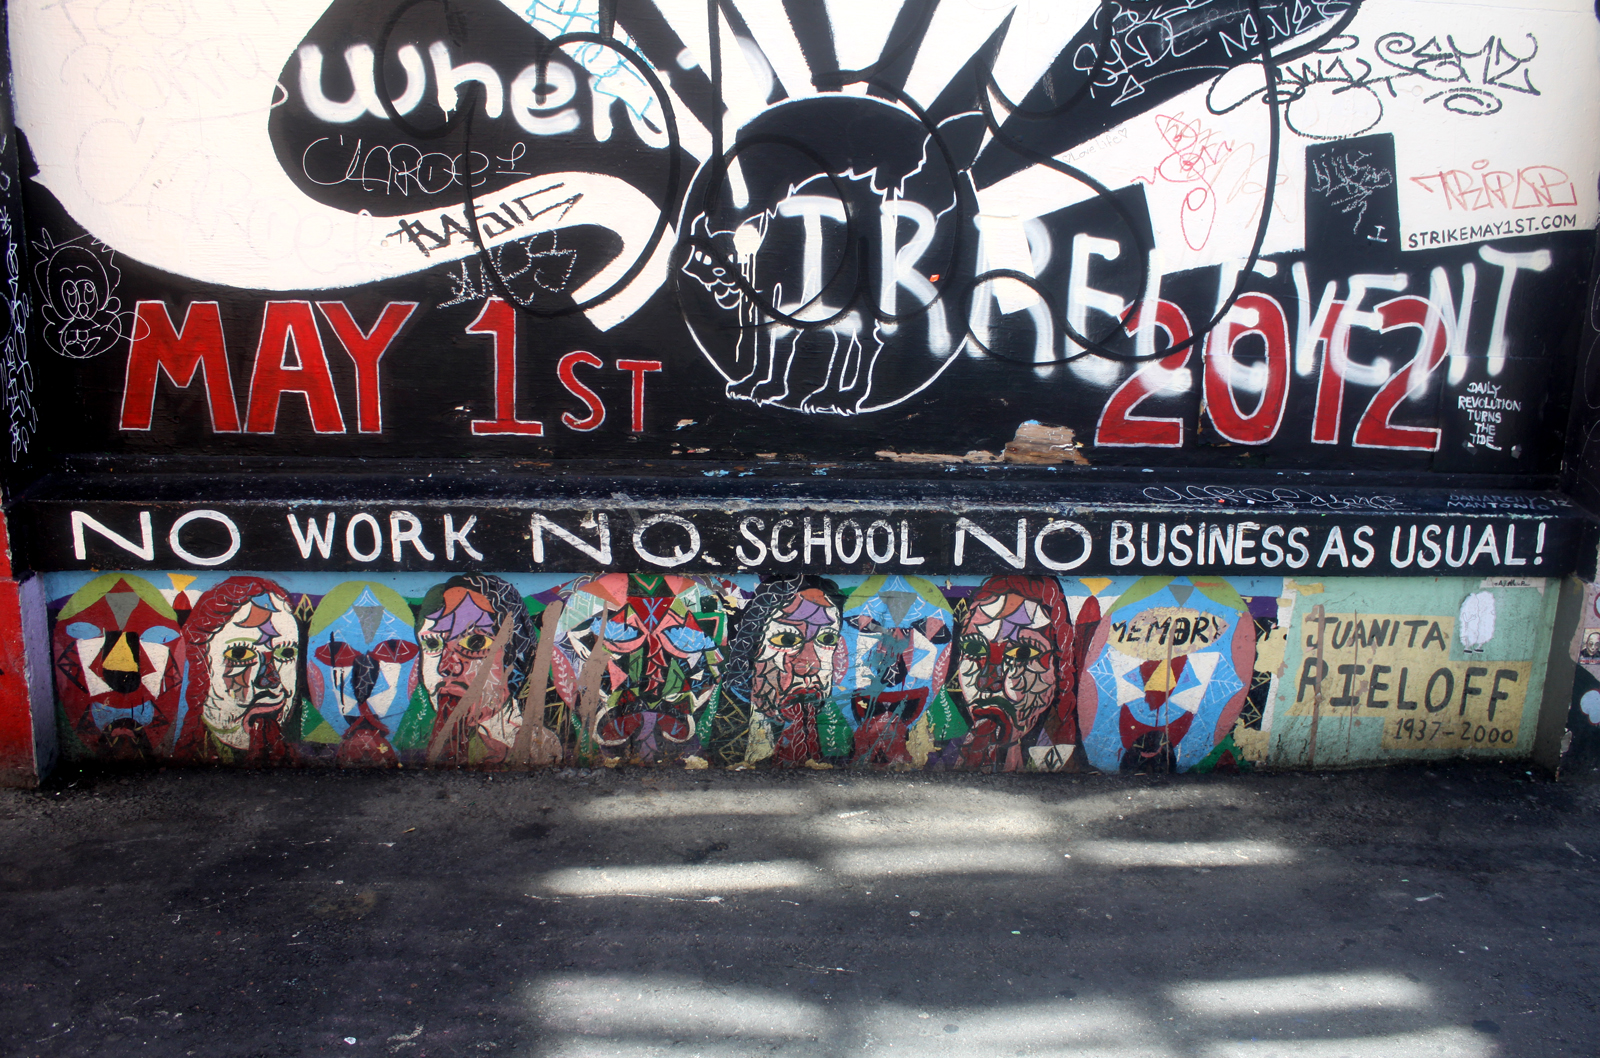 SNAP: No Work, No School, No Business as Usual